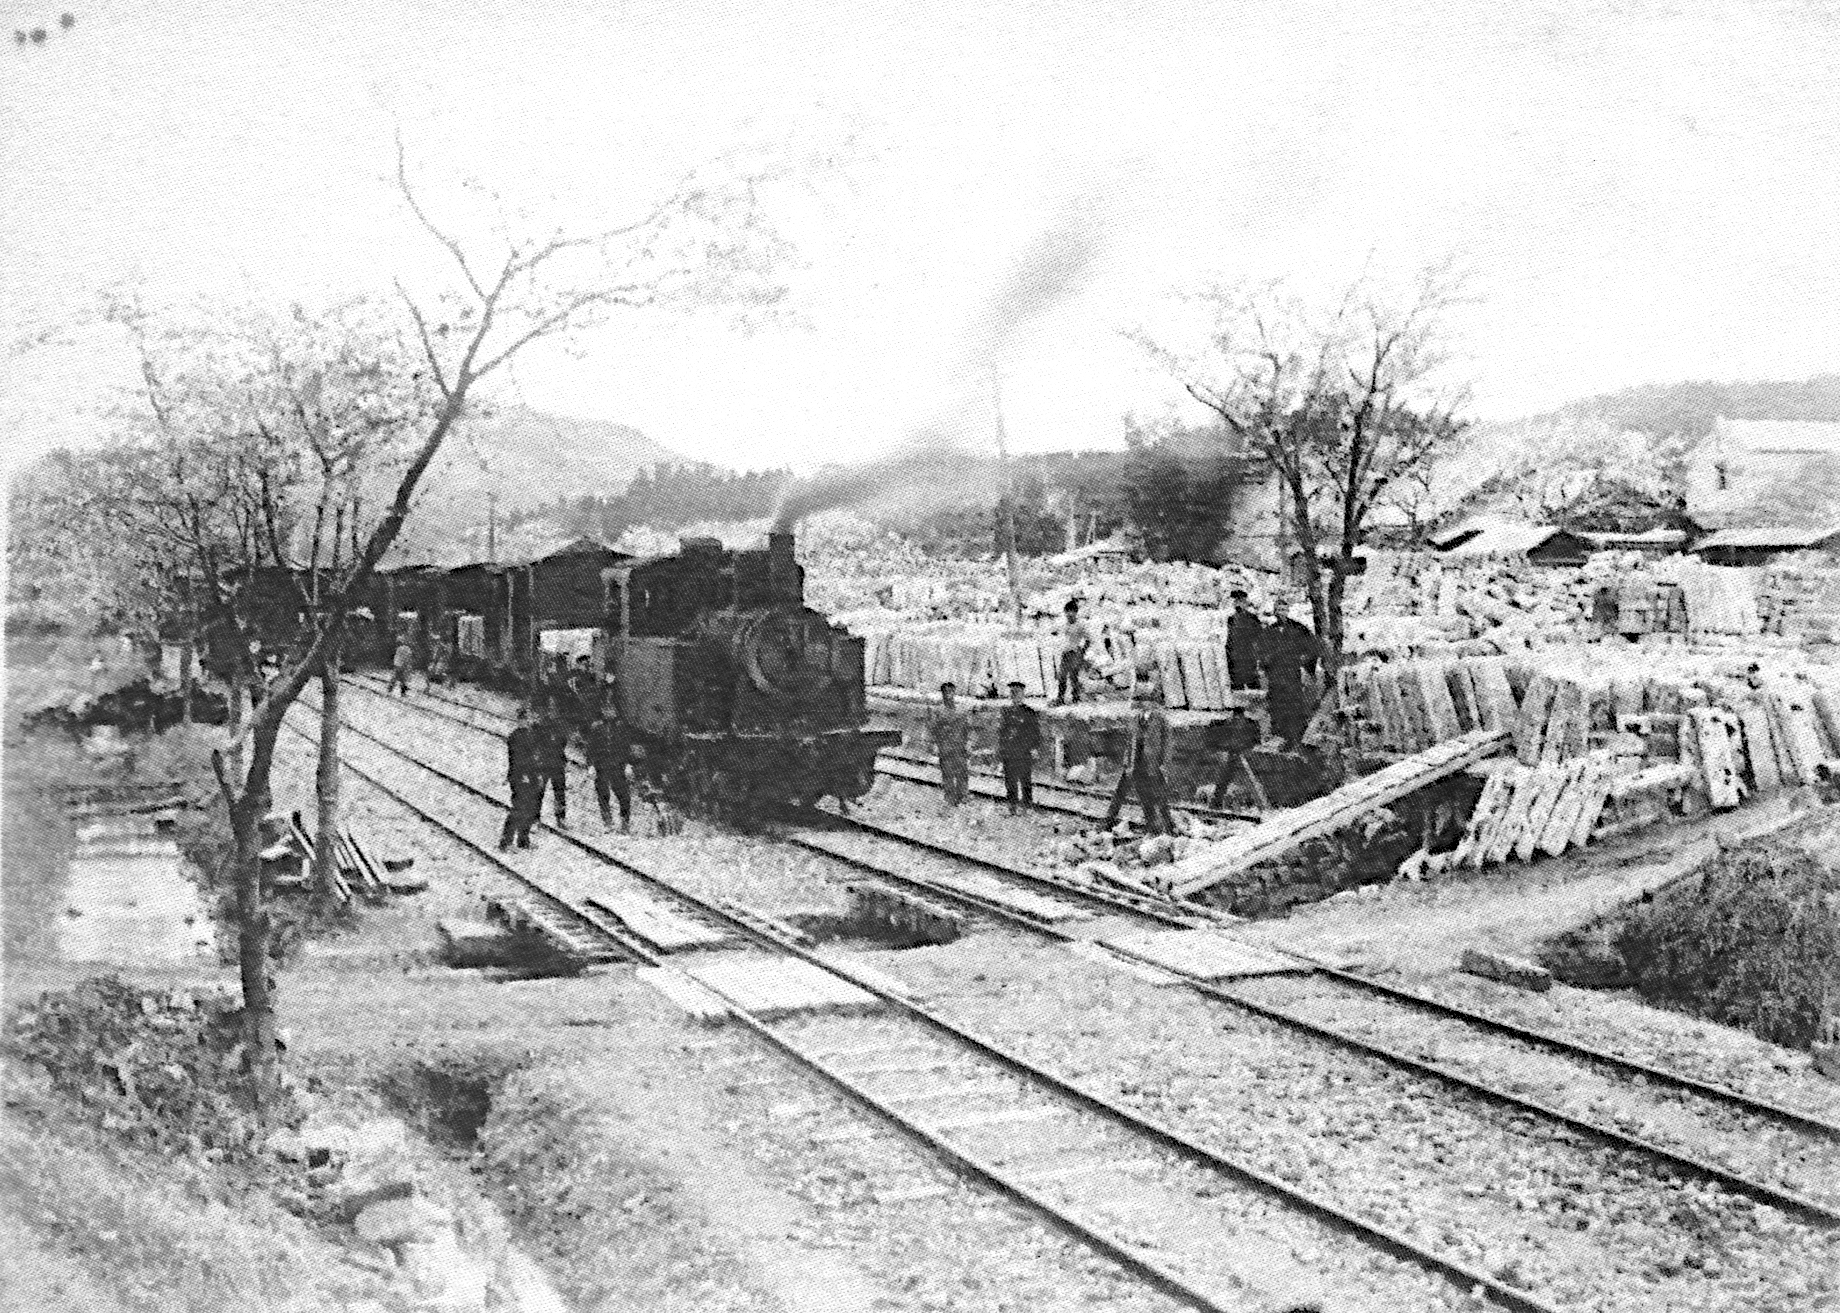 Arahari Station in the late 1920s, early 30s and number 5 steam locomotive